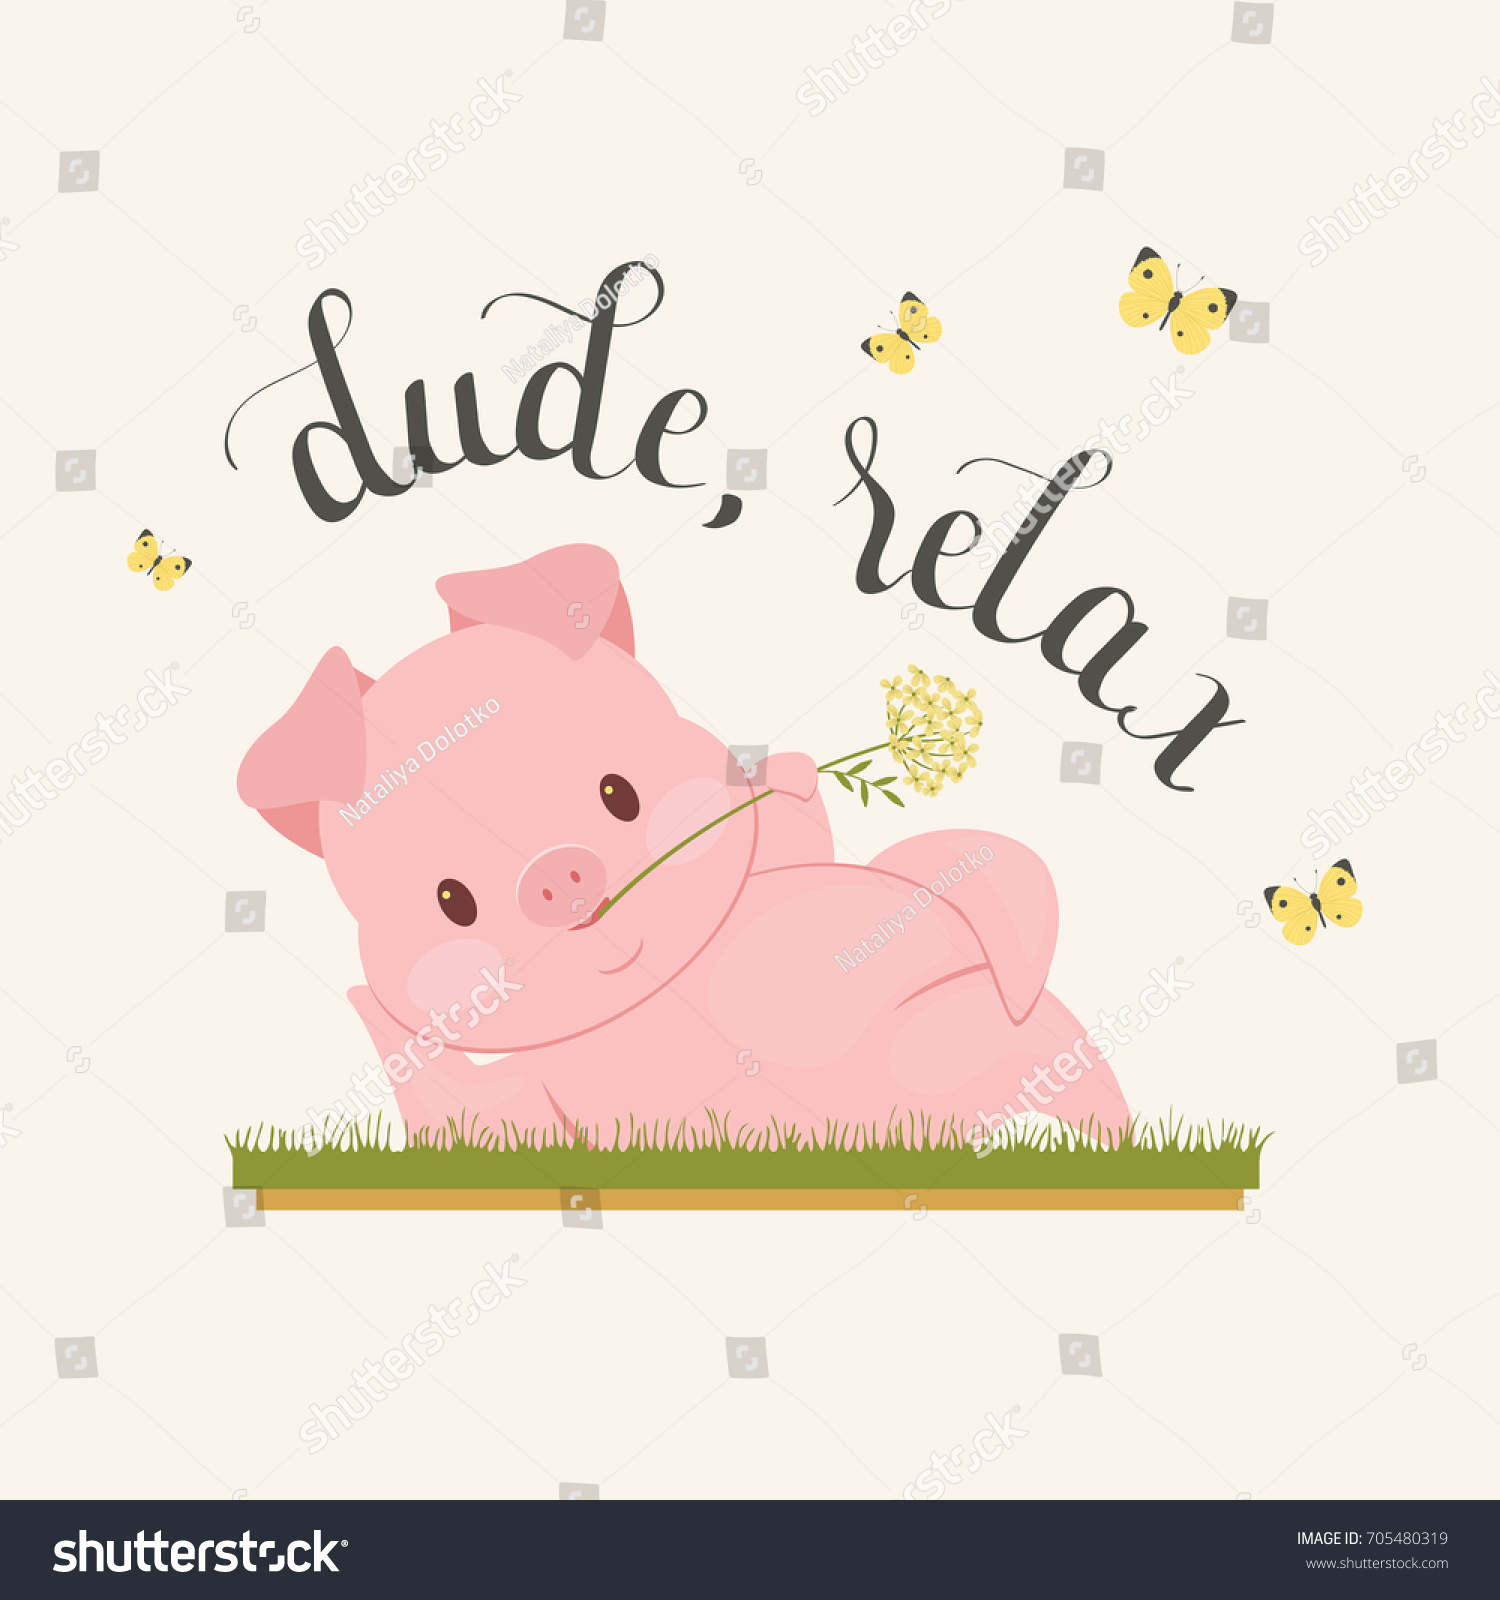 "Handwritten lettering ""dude, relax"" and funny pig character laying on the grass with flower in mouth. Poster, greeting card, wall art or wallpaper template."